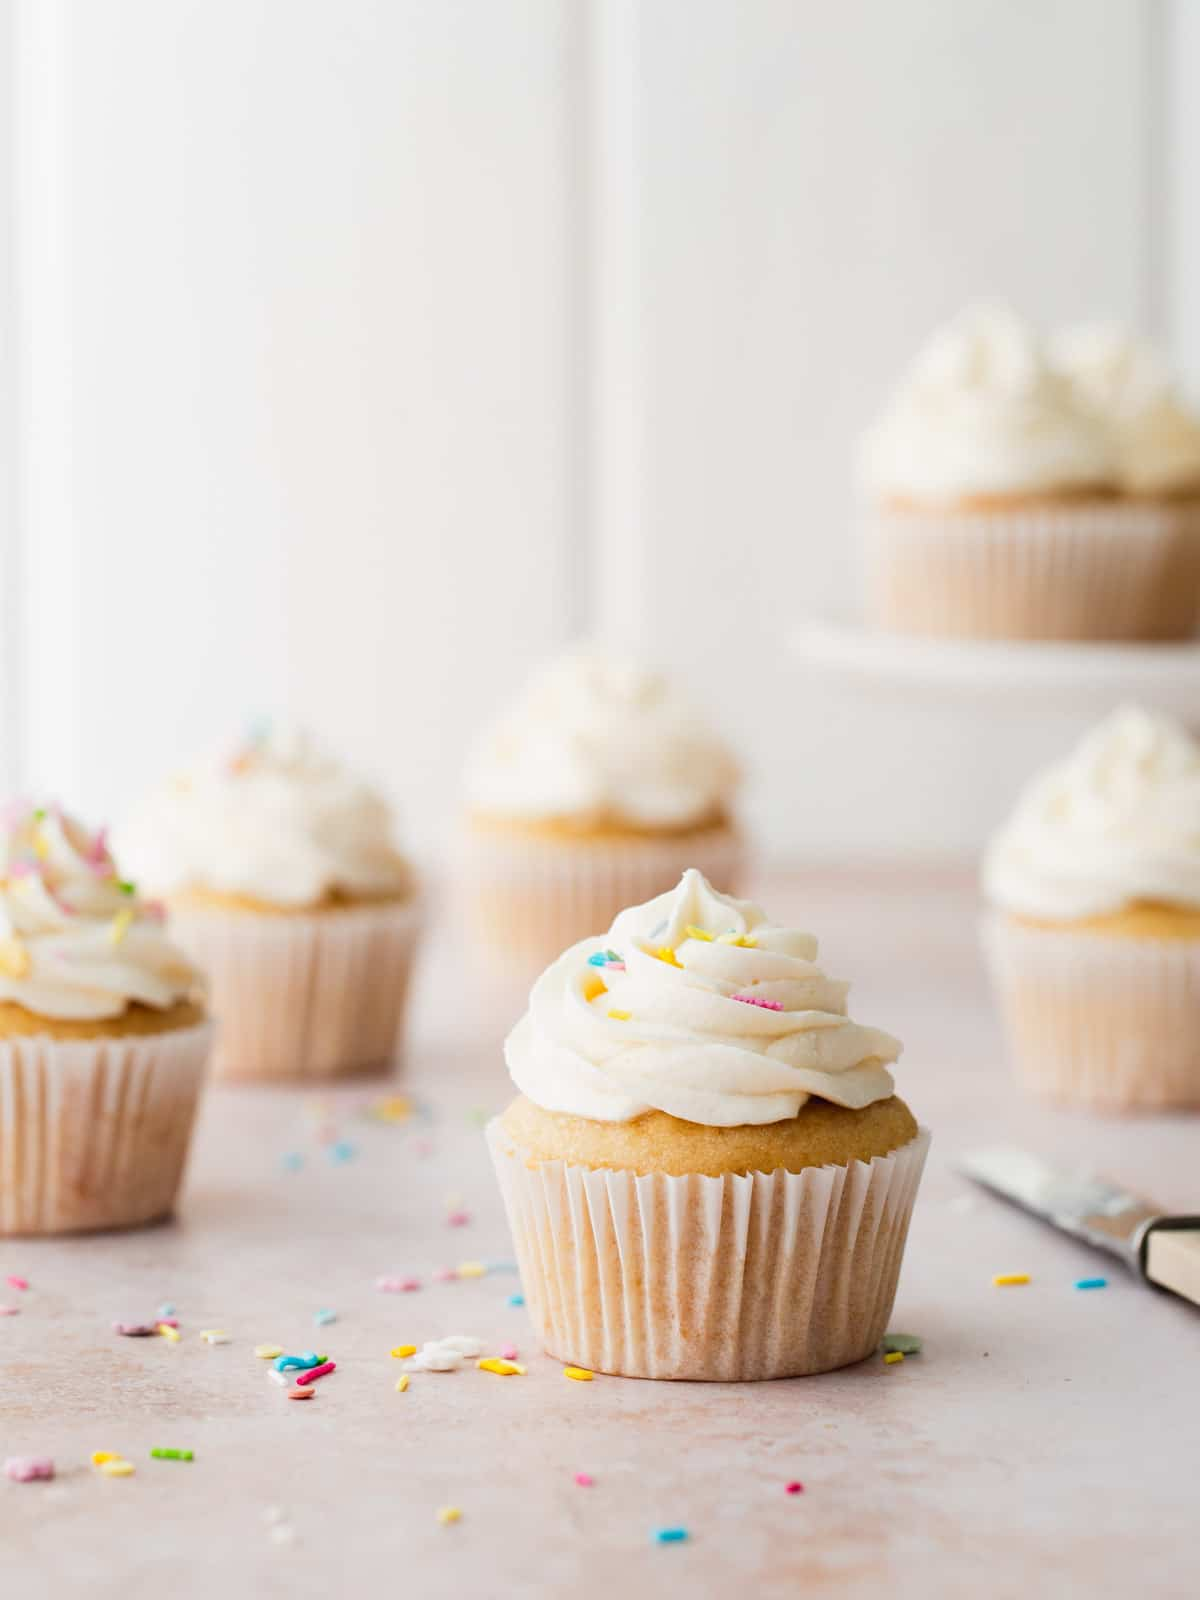 Vanilla cupcakes on a white wooden background.